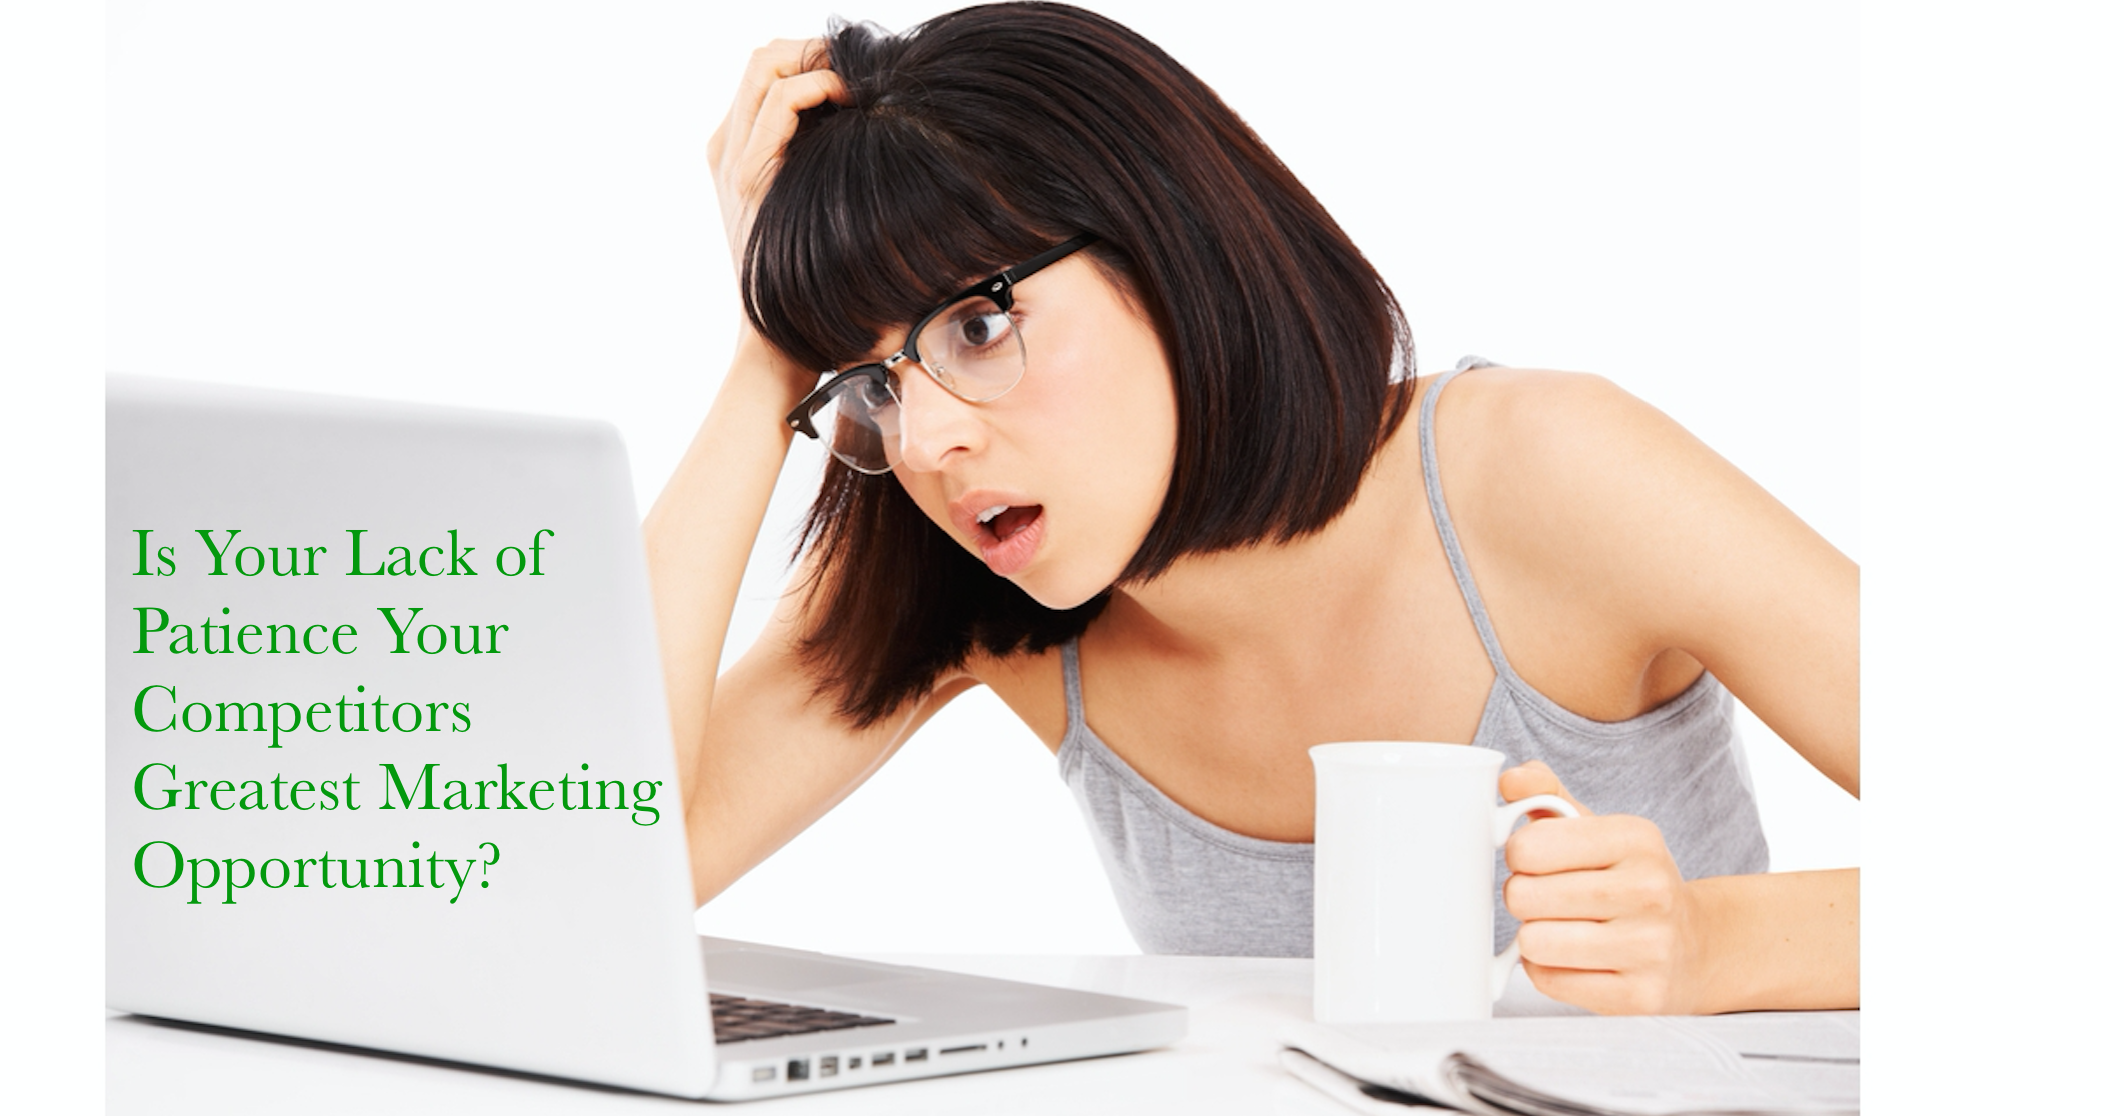 Is Your Lack of Patience Your Competitors Greatest Marketing Opportunity